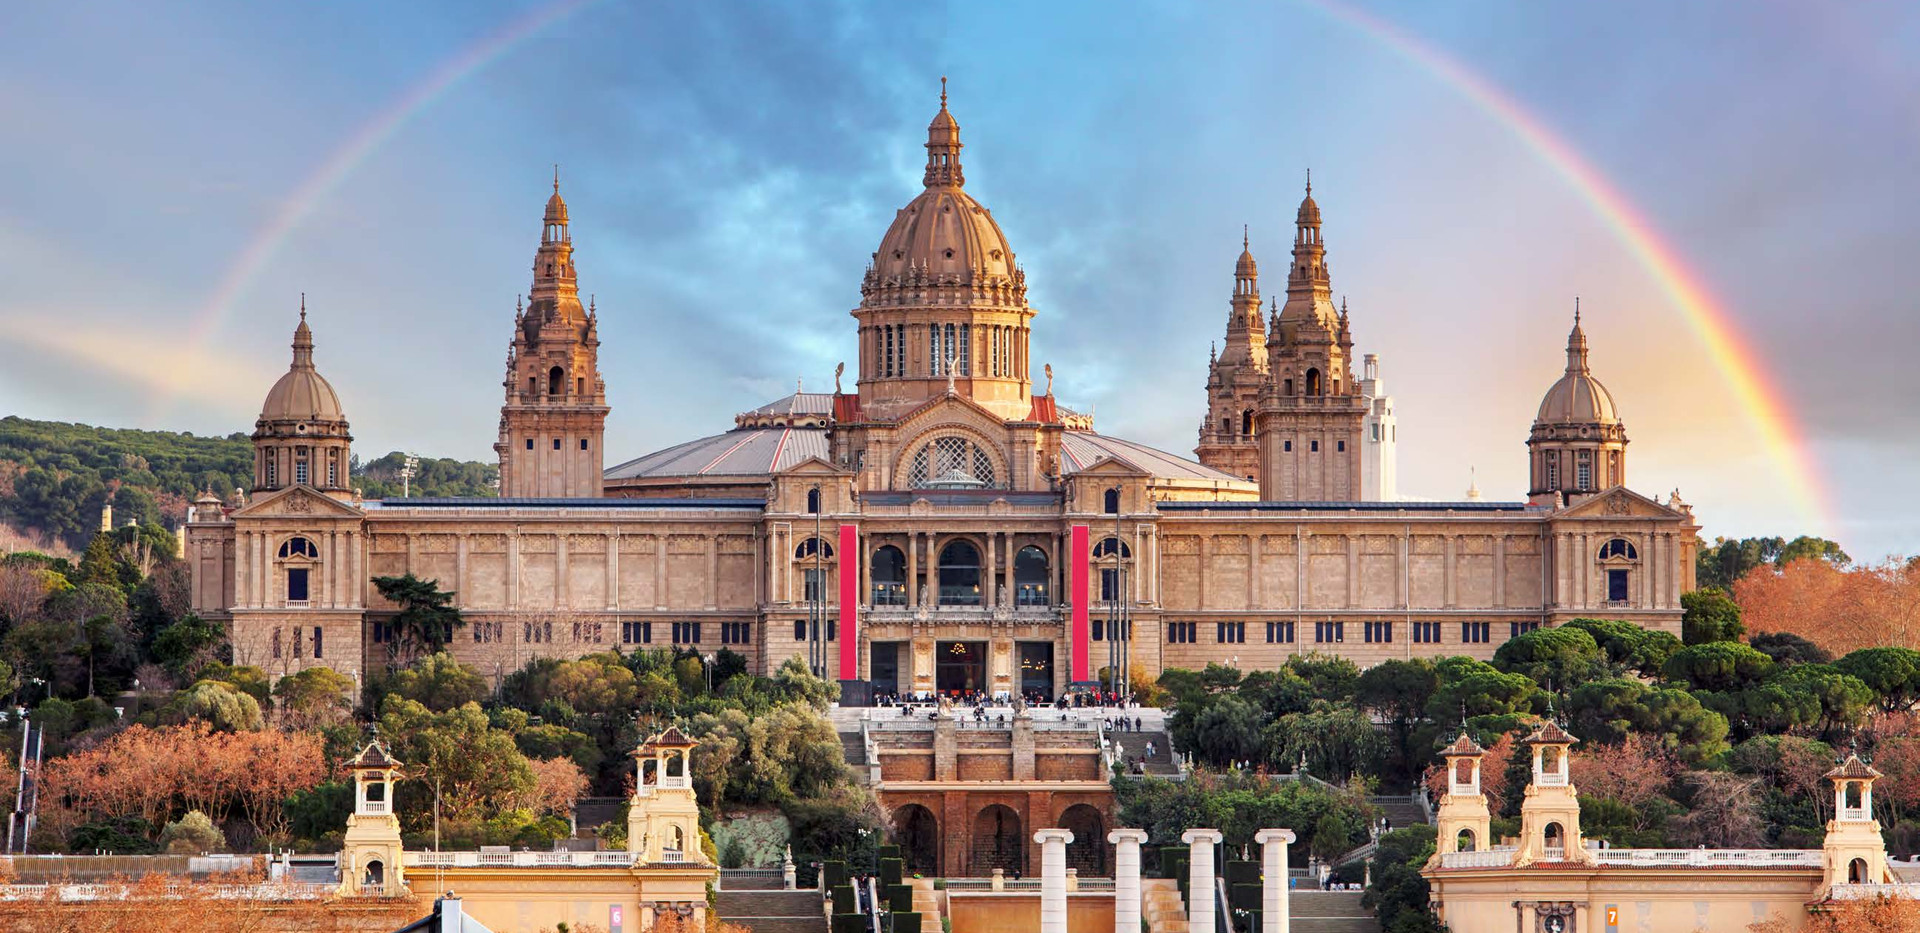 Canva - MNAC in Barcelona with rainbow.j